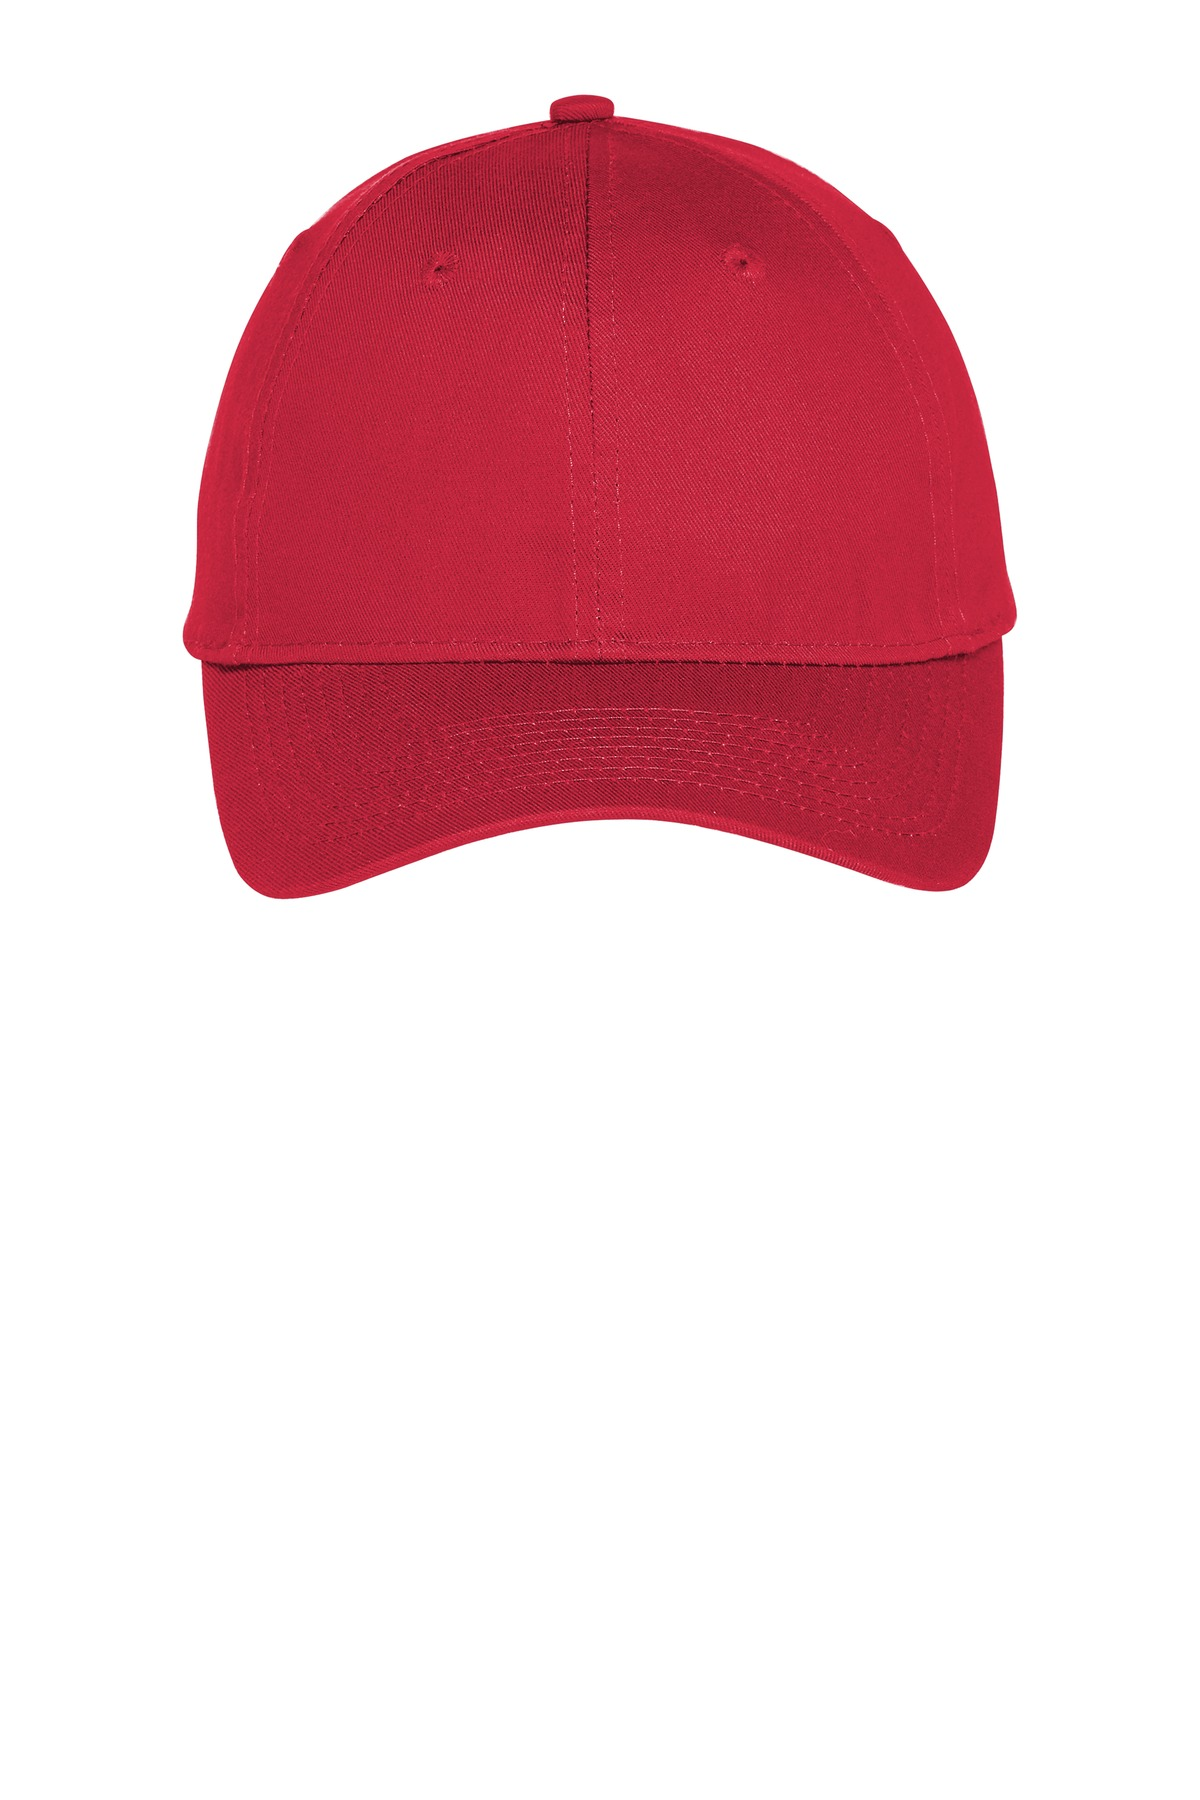 Port & Company ®  Six-Panel Unstructured Twill Cap. C914 - True Red